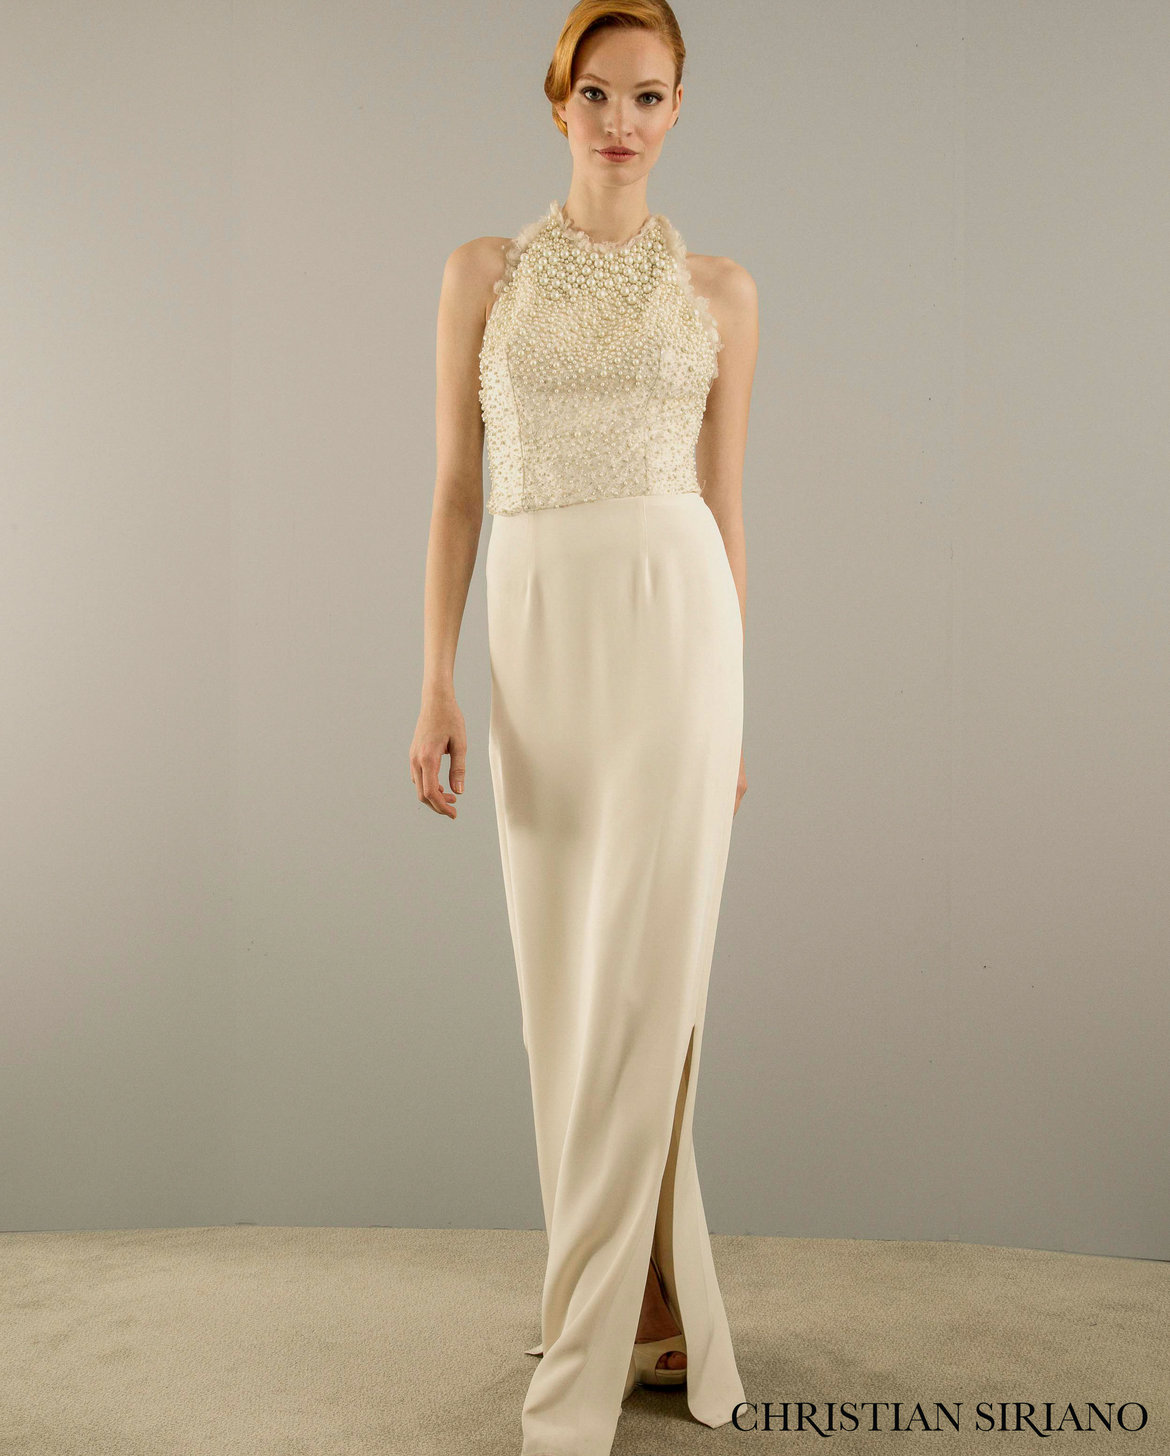 First Look: Christian Siriano\'s New Bridal Collection For Kleinfeld ...